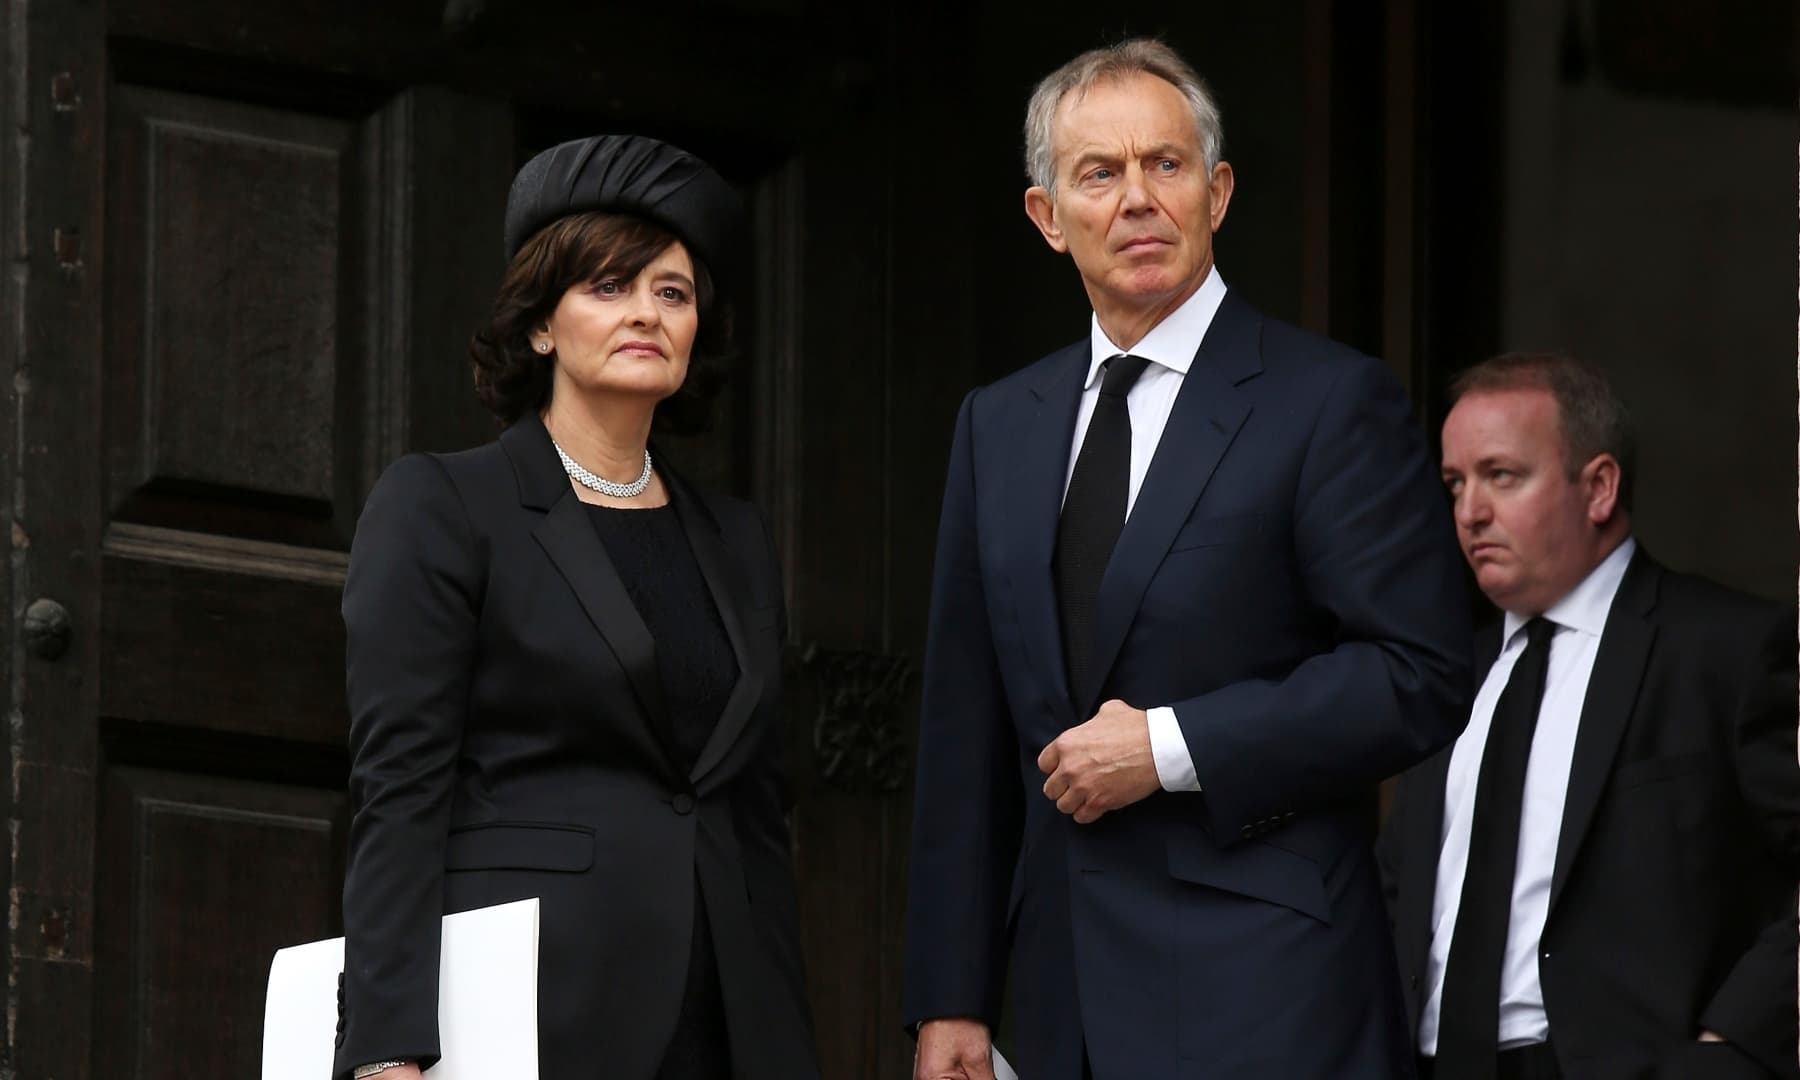 Former British prime minister Tony Blair and his wife Cherie Blair leave the ceremonial funeral of former British prime minister Baroness Thatcher in St Paul's Cathedral in London, UK on April 17, 2013. — AP/File